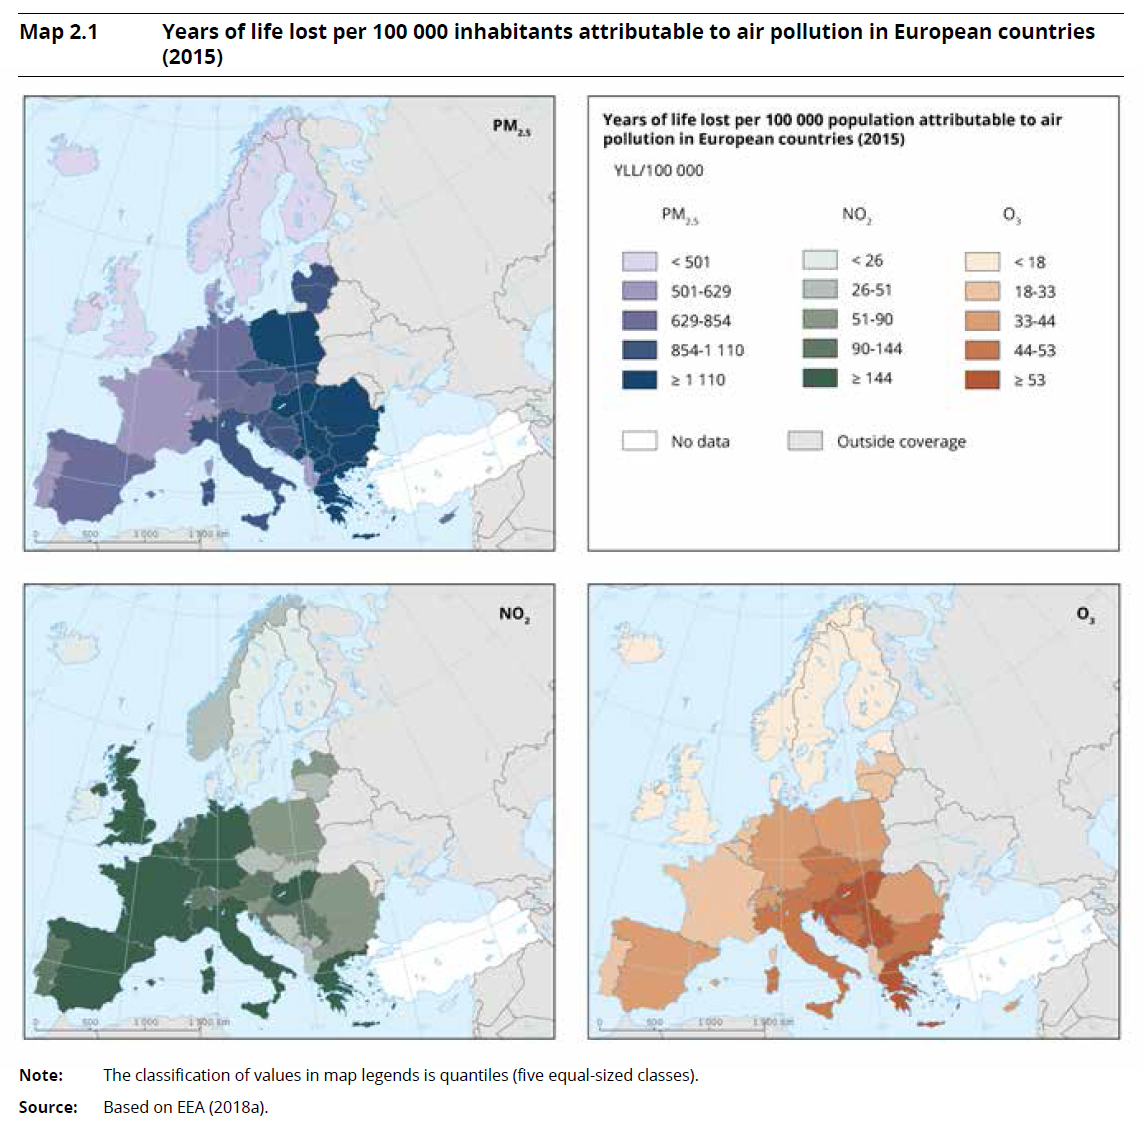 Years of life lost per 100 000 inhabitants attributable to air pollution in European countries (2015)